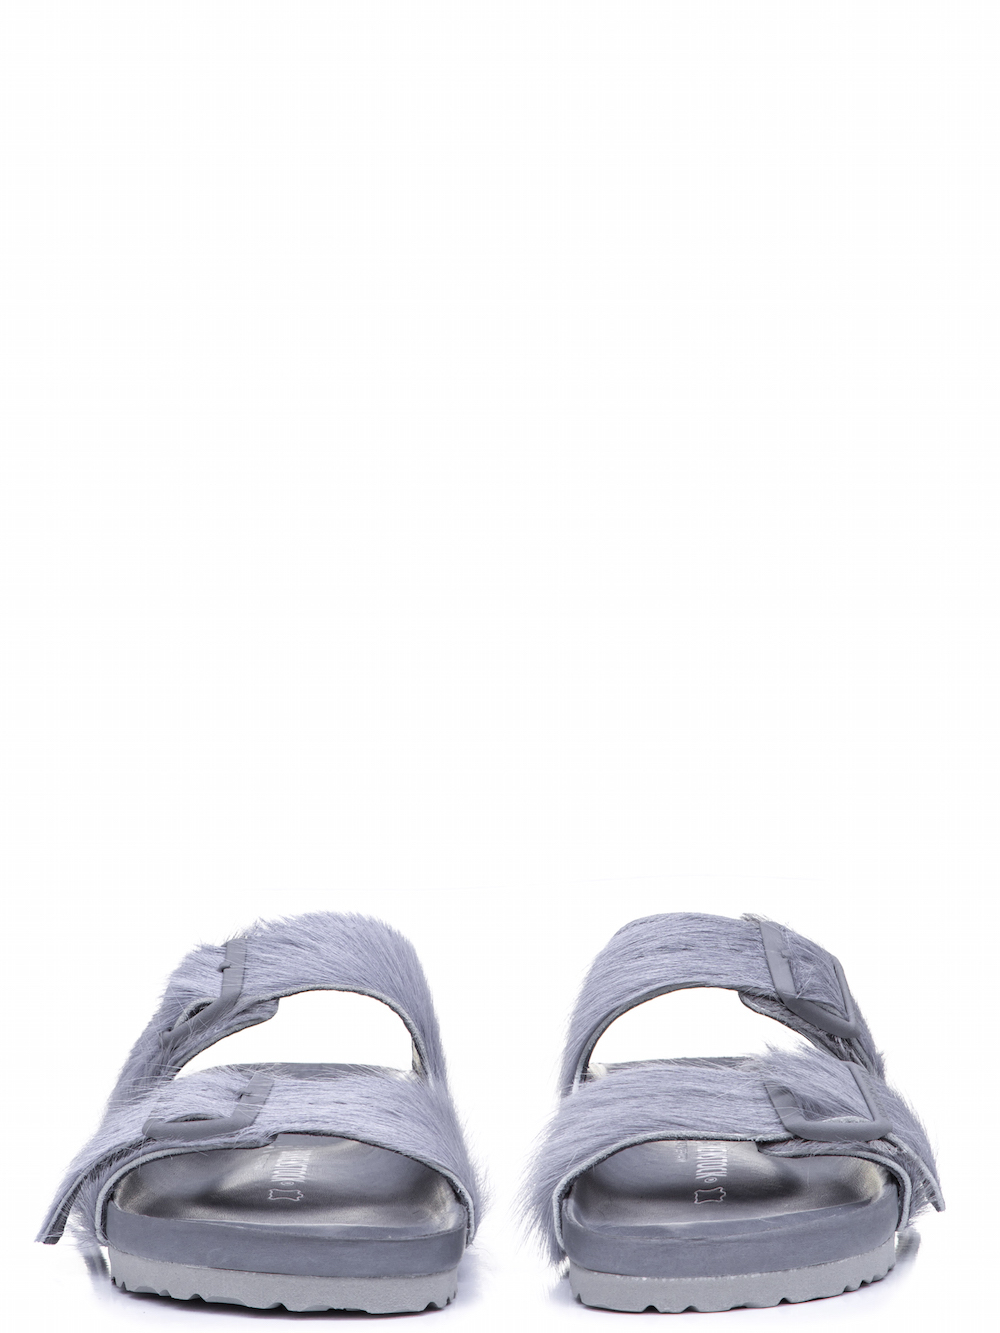 RICK OWENS X BIRKENSTOCK ARIZONA SANDAL IN GREY